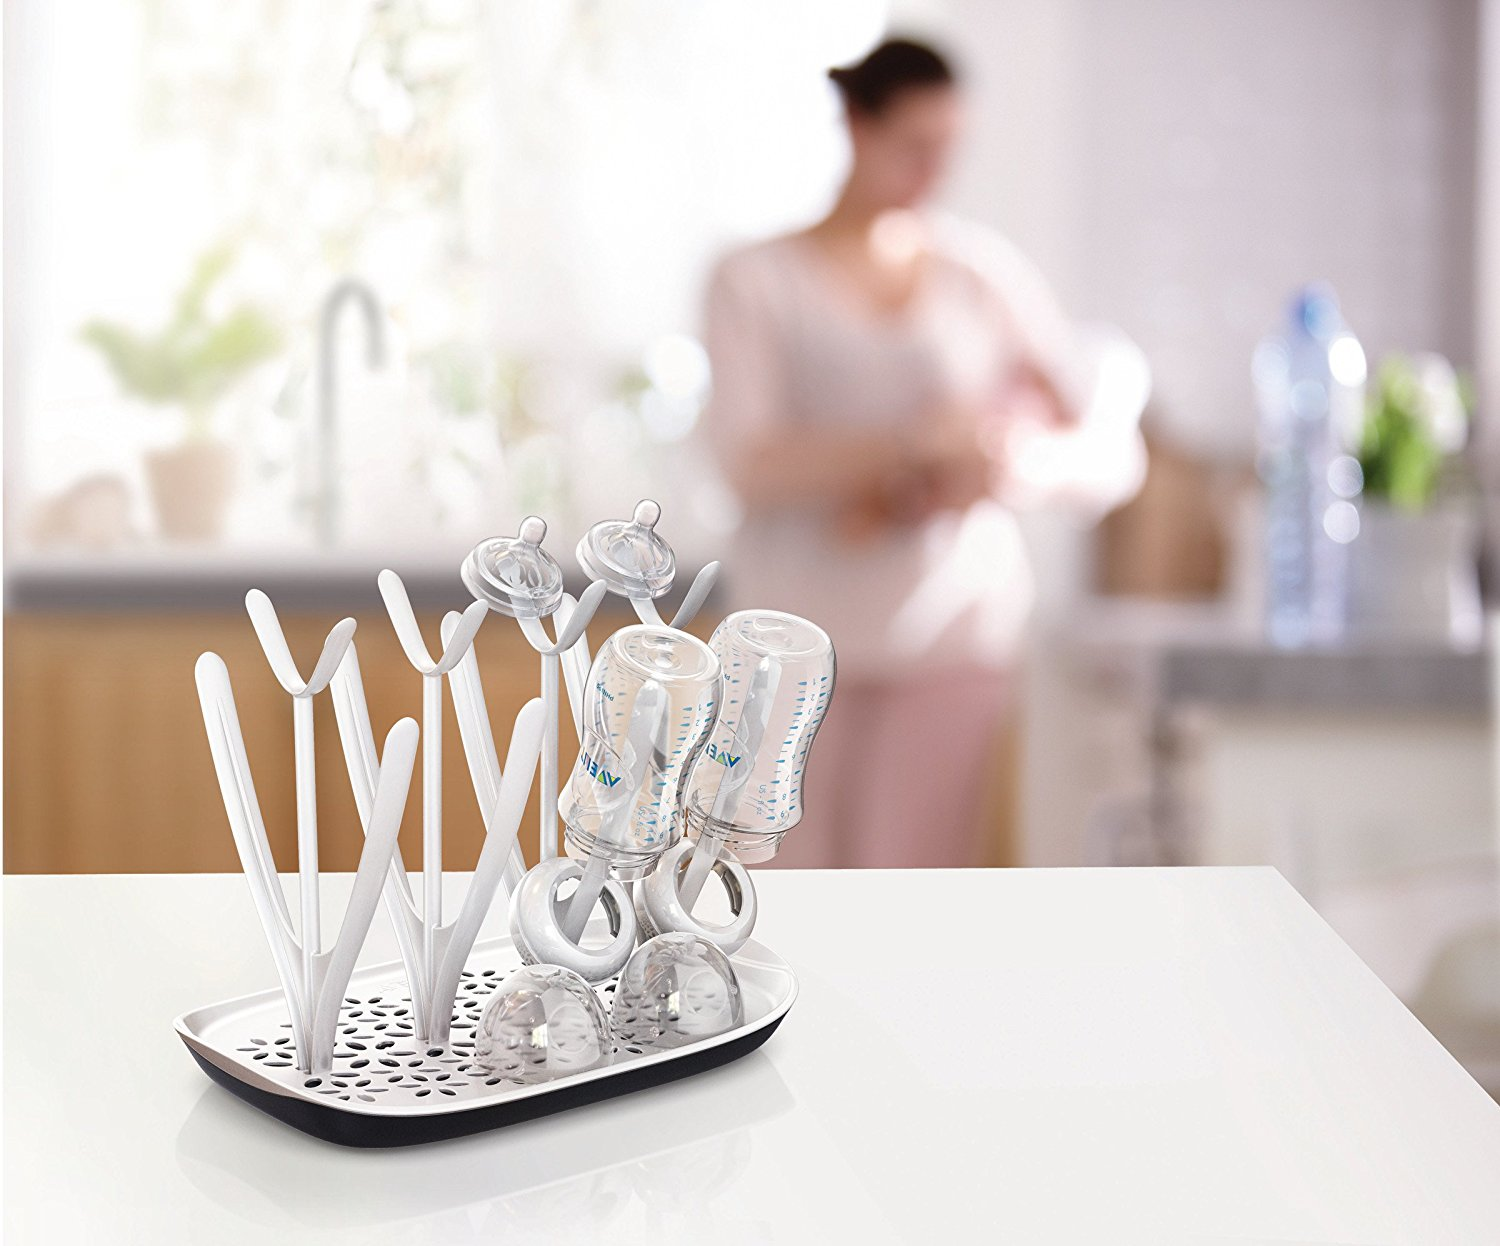 Best Baby Bottle Drying Racks Reviewed in 2019 | Borncute.com